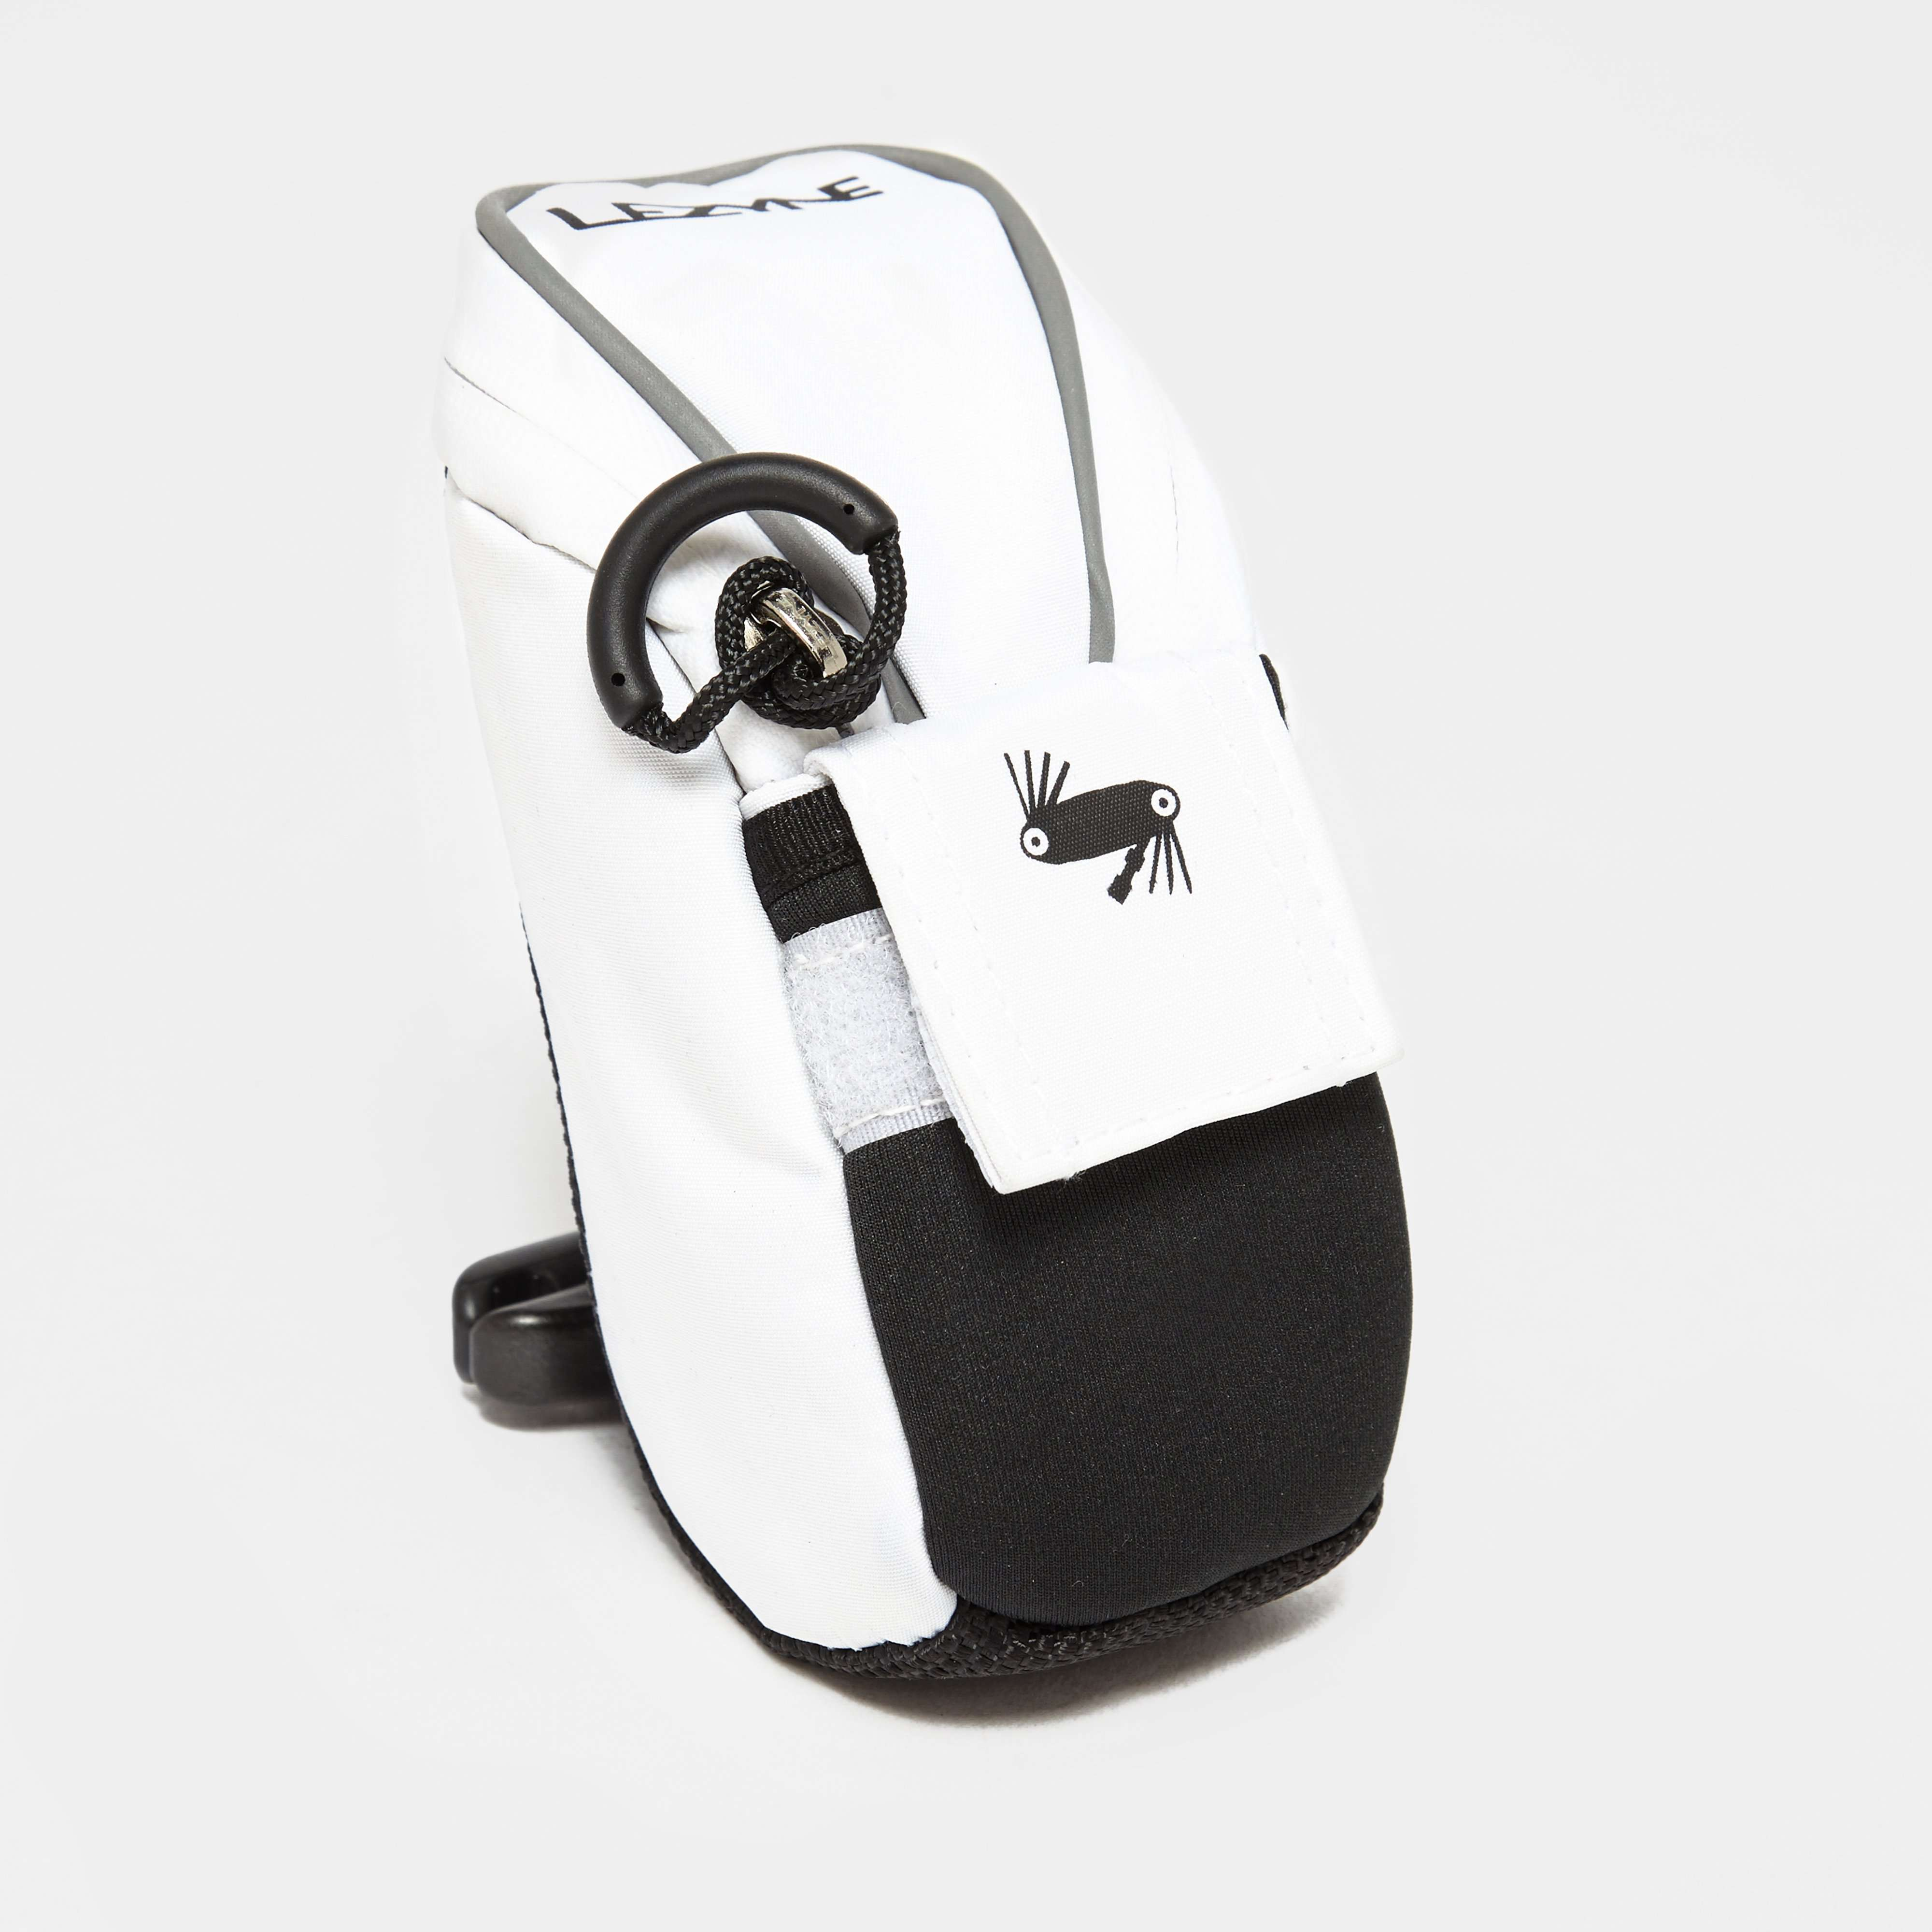 LEZYNE Micro Caddy QR Saddle Bag - Small